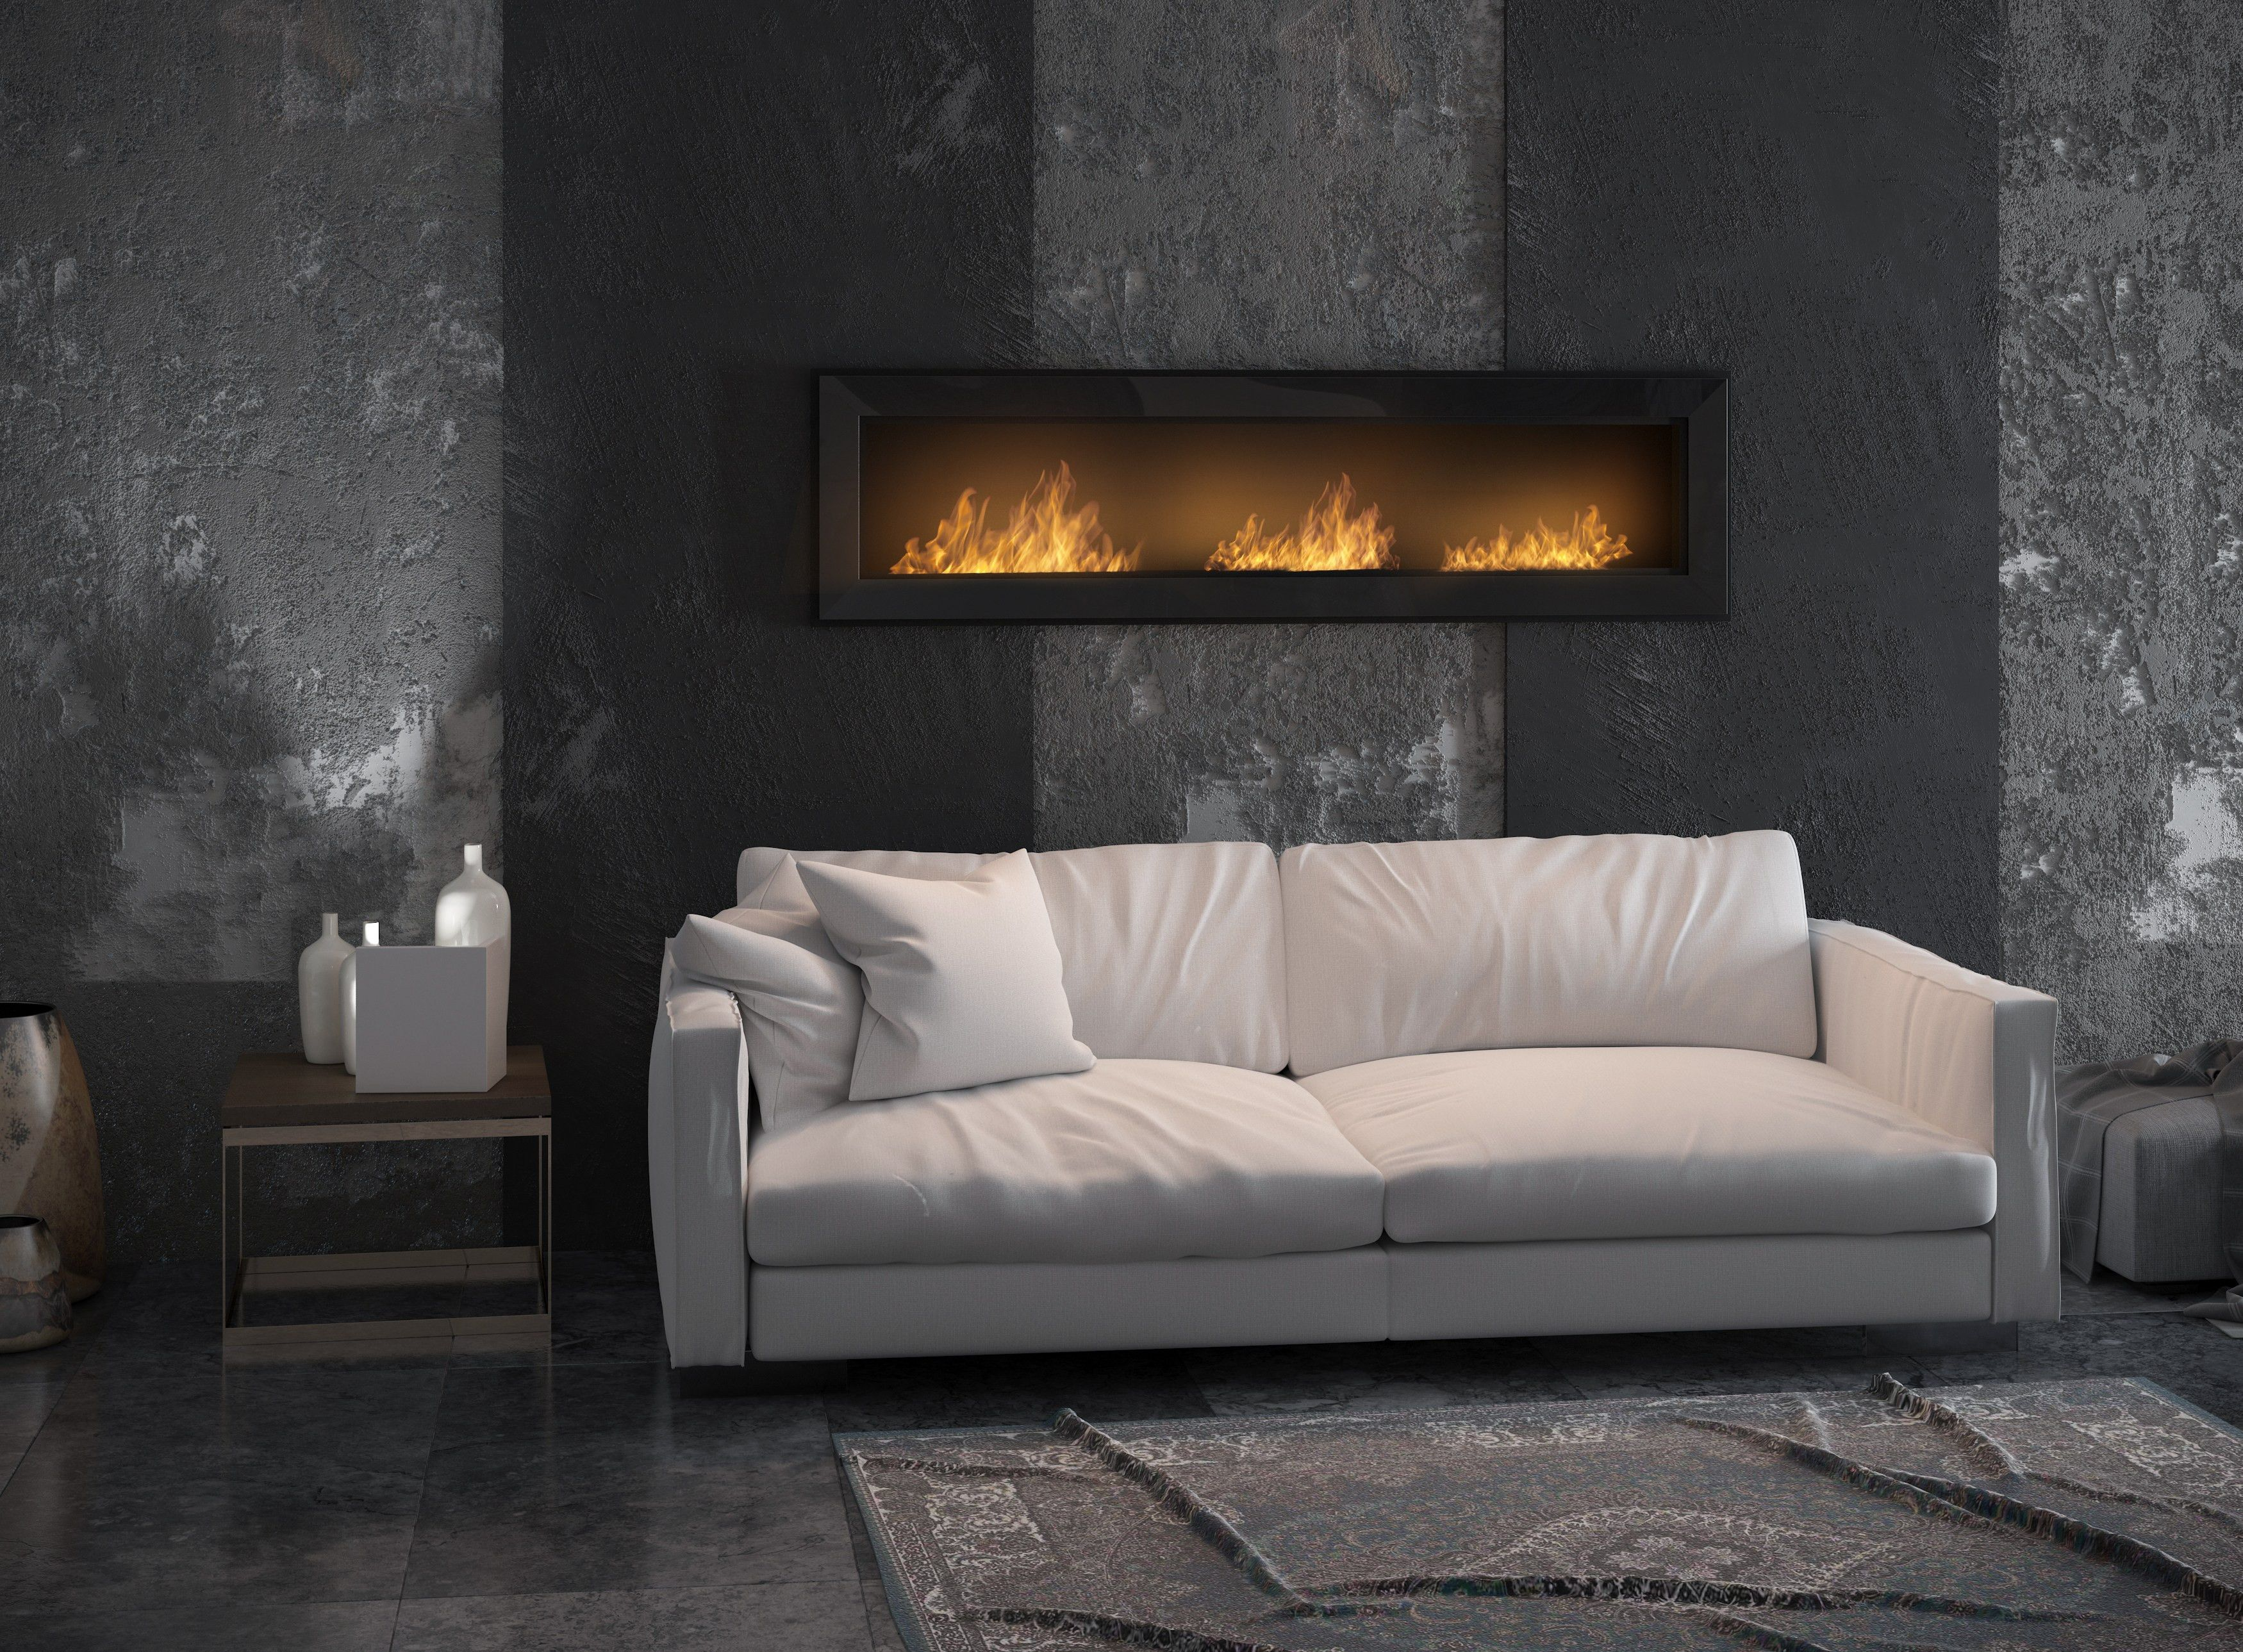 Cheminee Ethanol Leroy Merlin Cheminee Ethanol Leroy Merlin Cheminee A L Ethanol Leroy Merlin Point Feu Cheminee Principe De Fonc Fireplace Design Home Decor